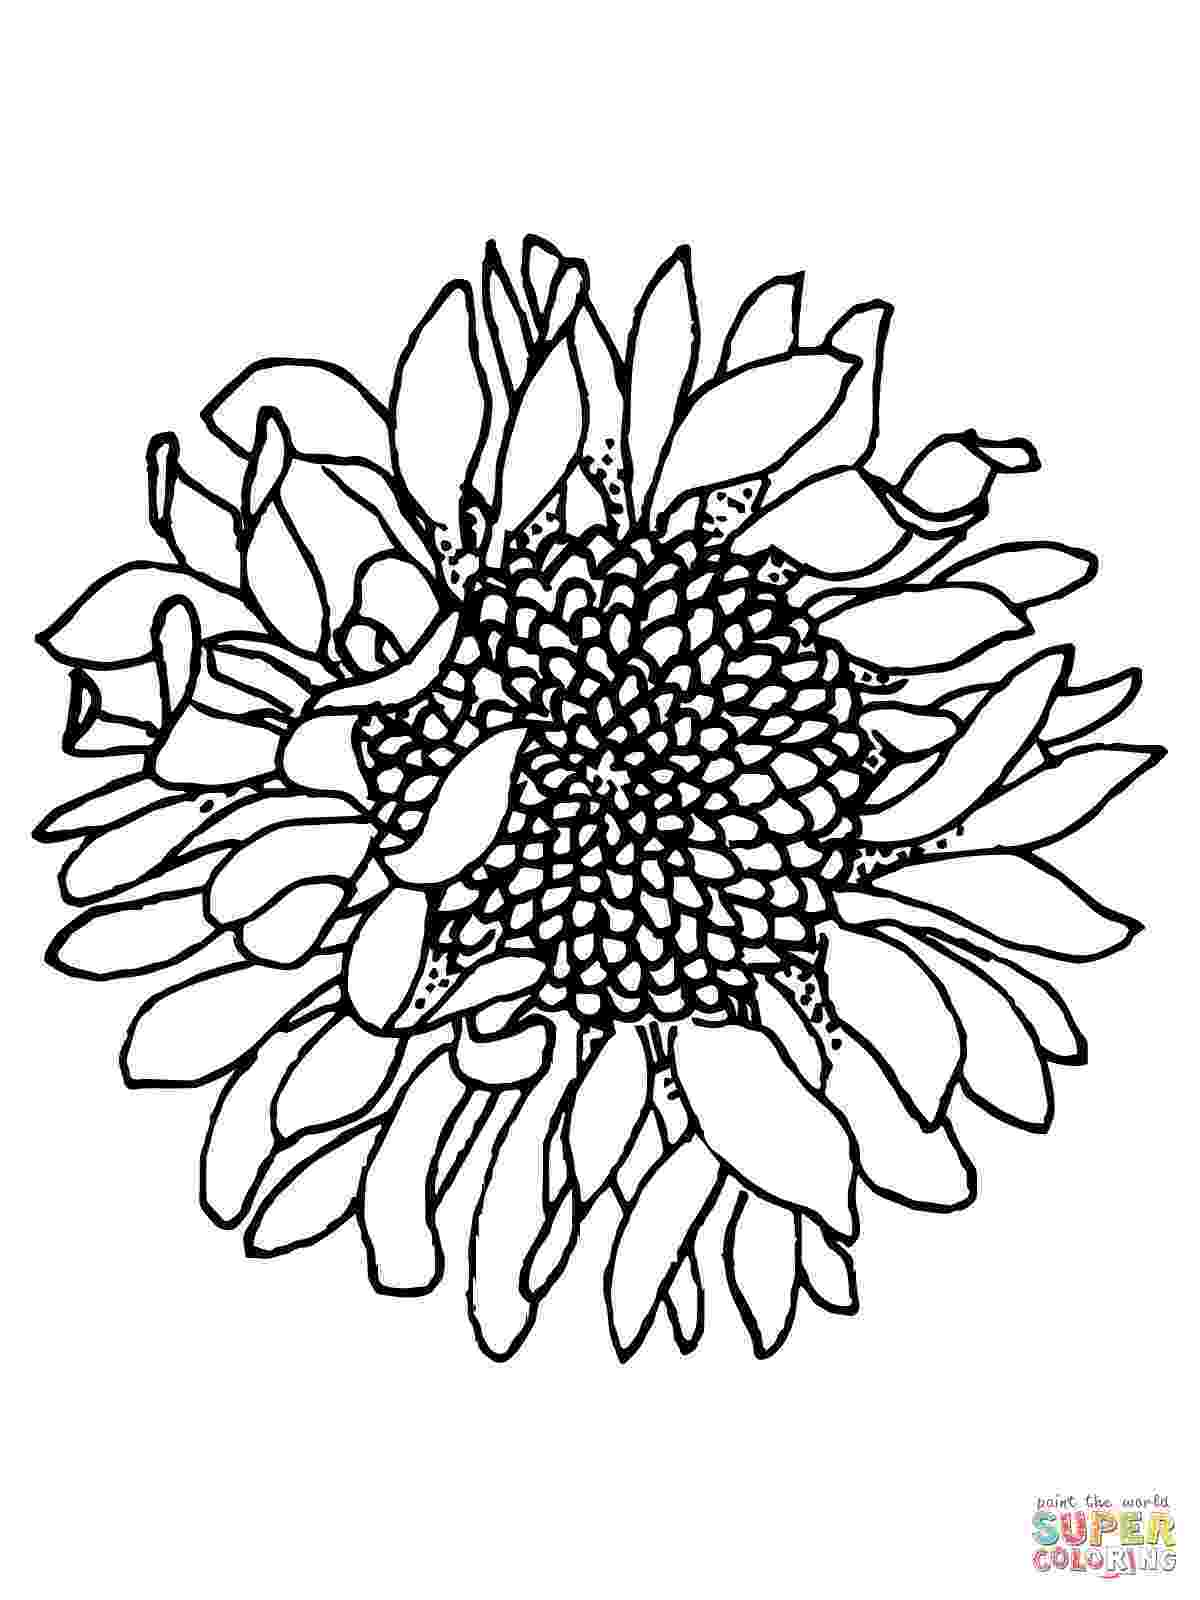 sunflower to color sunflower coloring page getcoloringpagescom to sunflower color